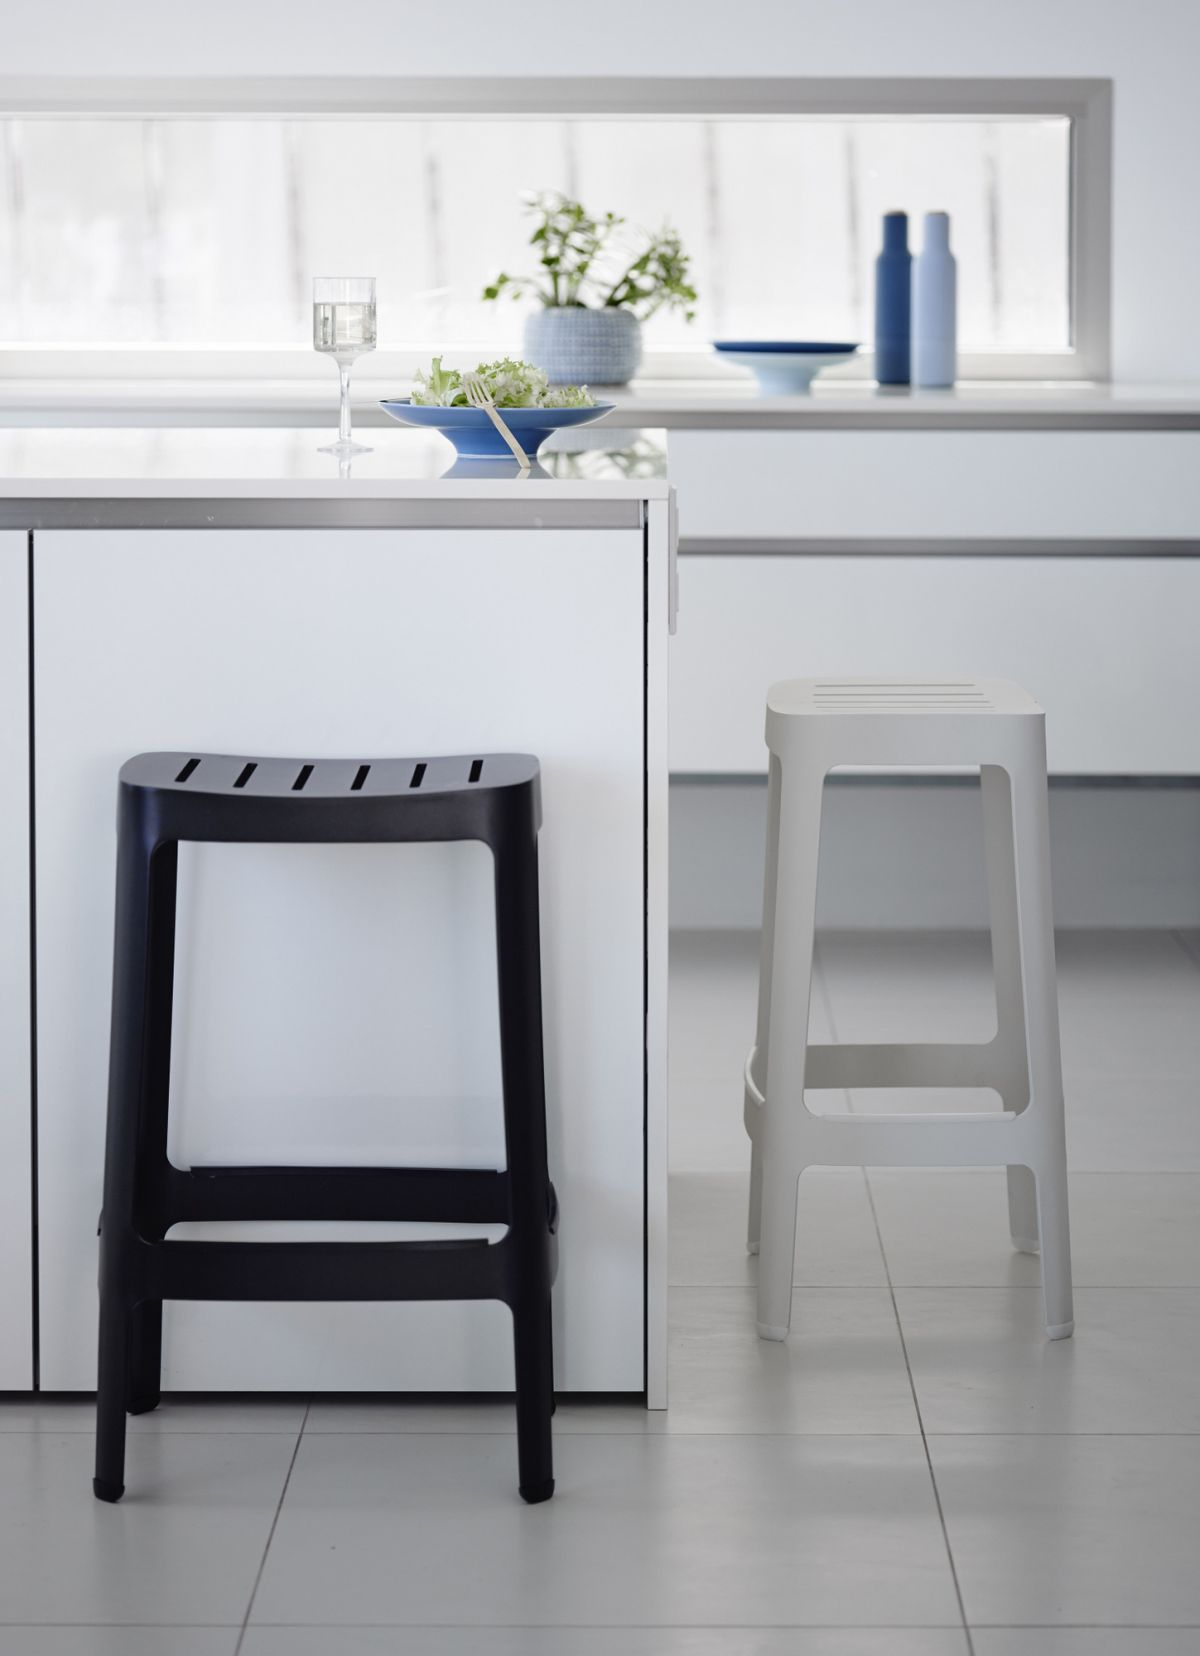 tall kitchen cabinets play ikea black and white bar stools – how to choose use them